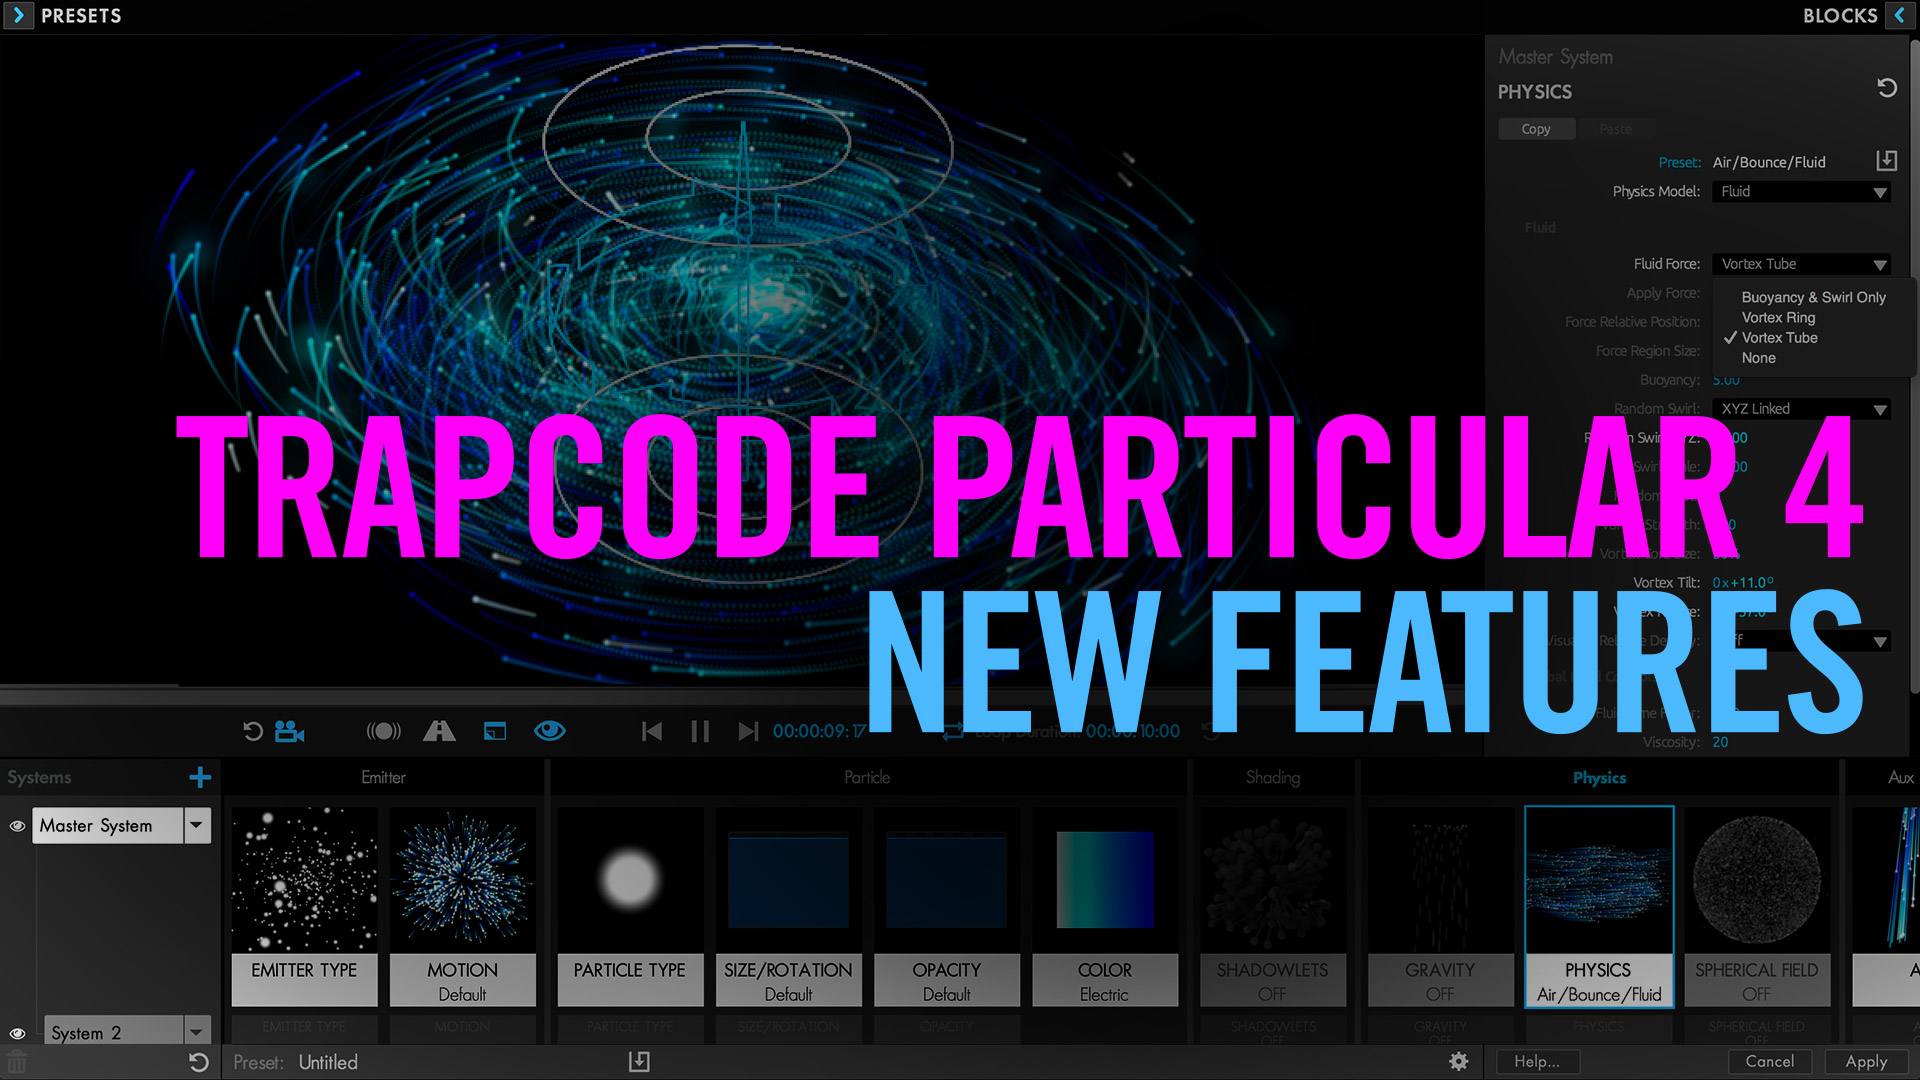 Trapcode Particular 4 - New Features